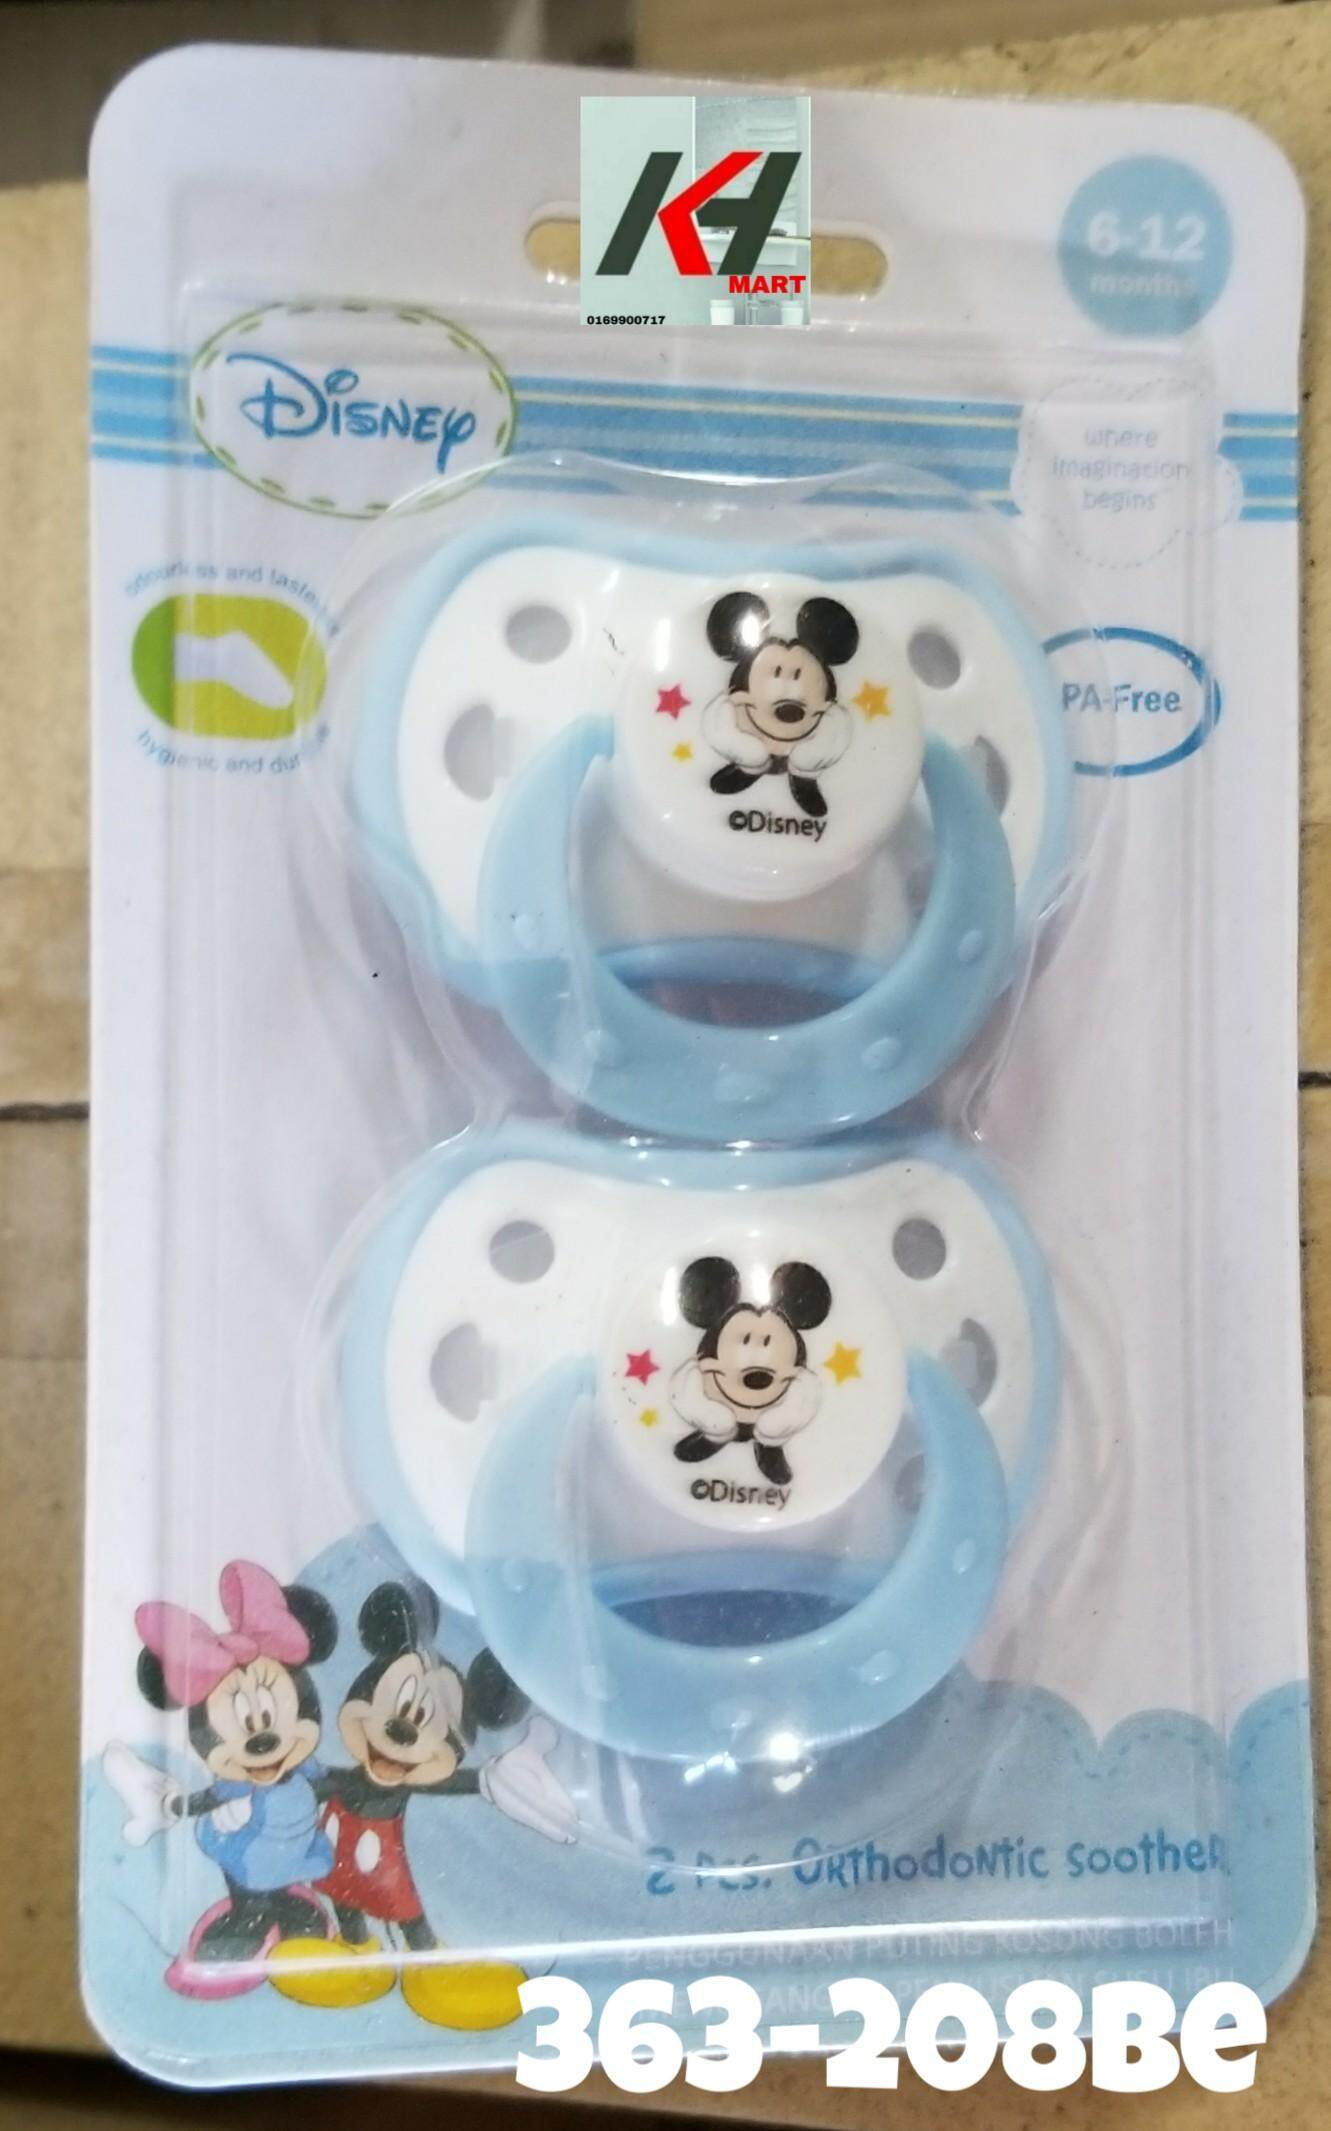 ANAKKU DISNEY MICKEY ORTHODONTIC  SOFT RIM  S00THER-363-208(BE) (2 Pcs)